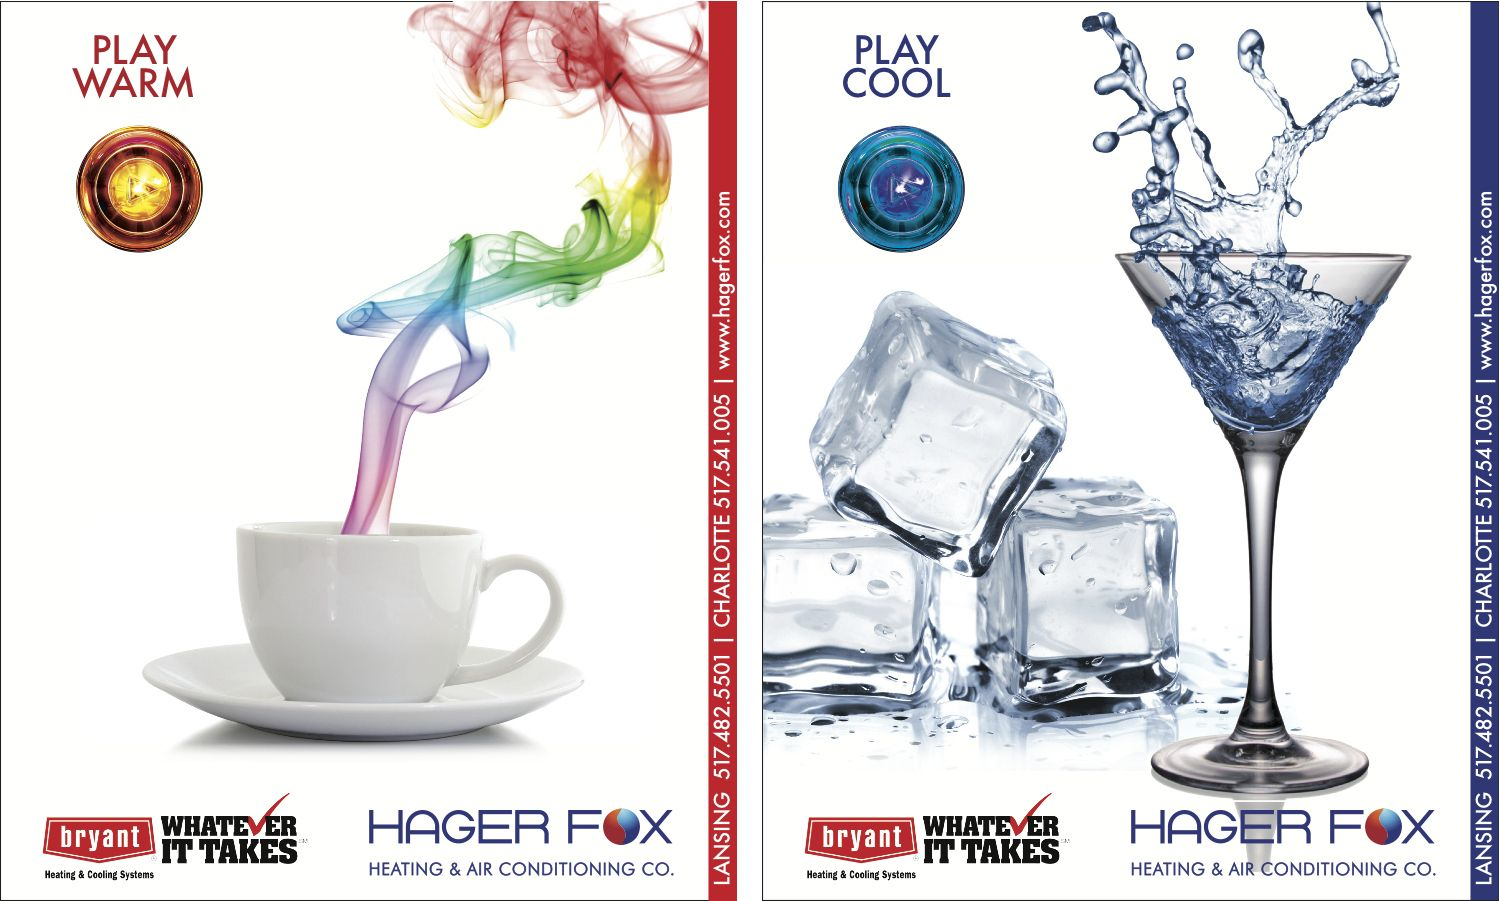 Hager Fox A two part campaign for a local heating